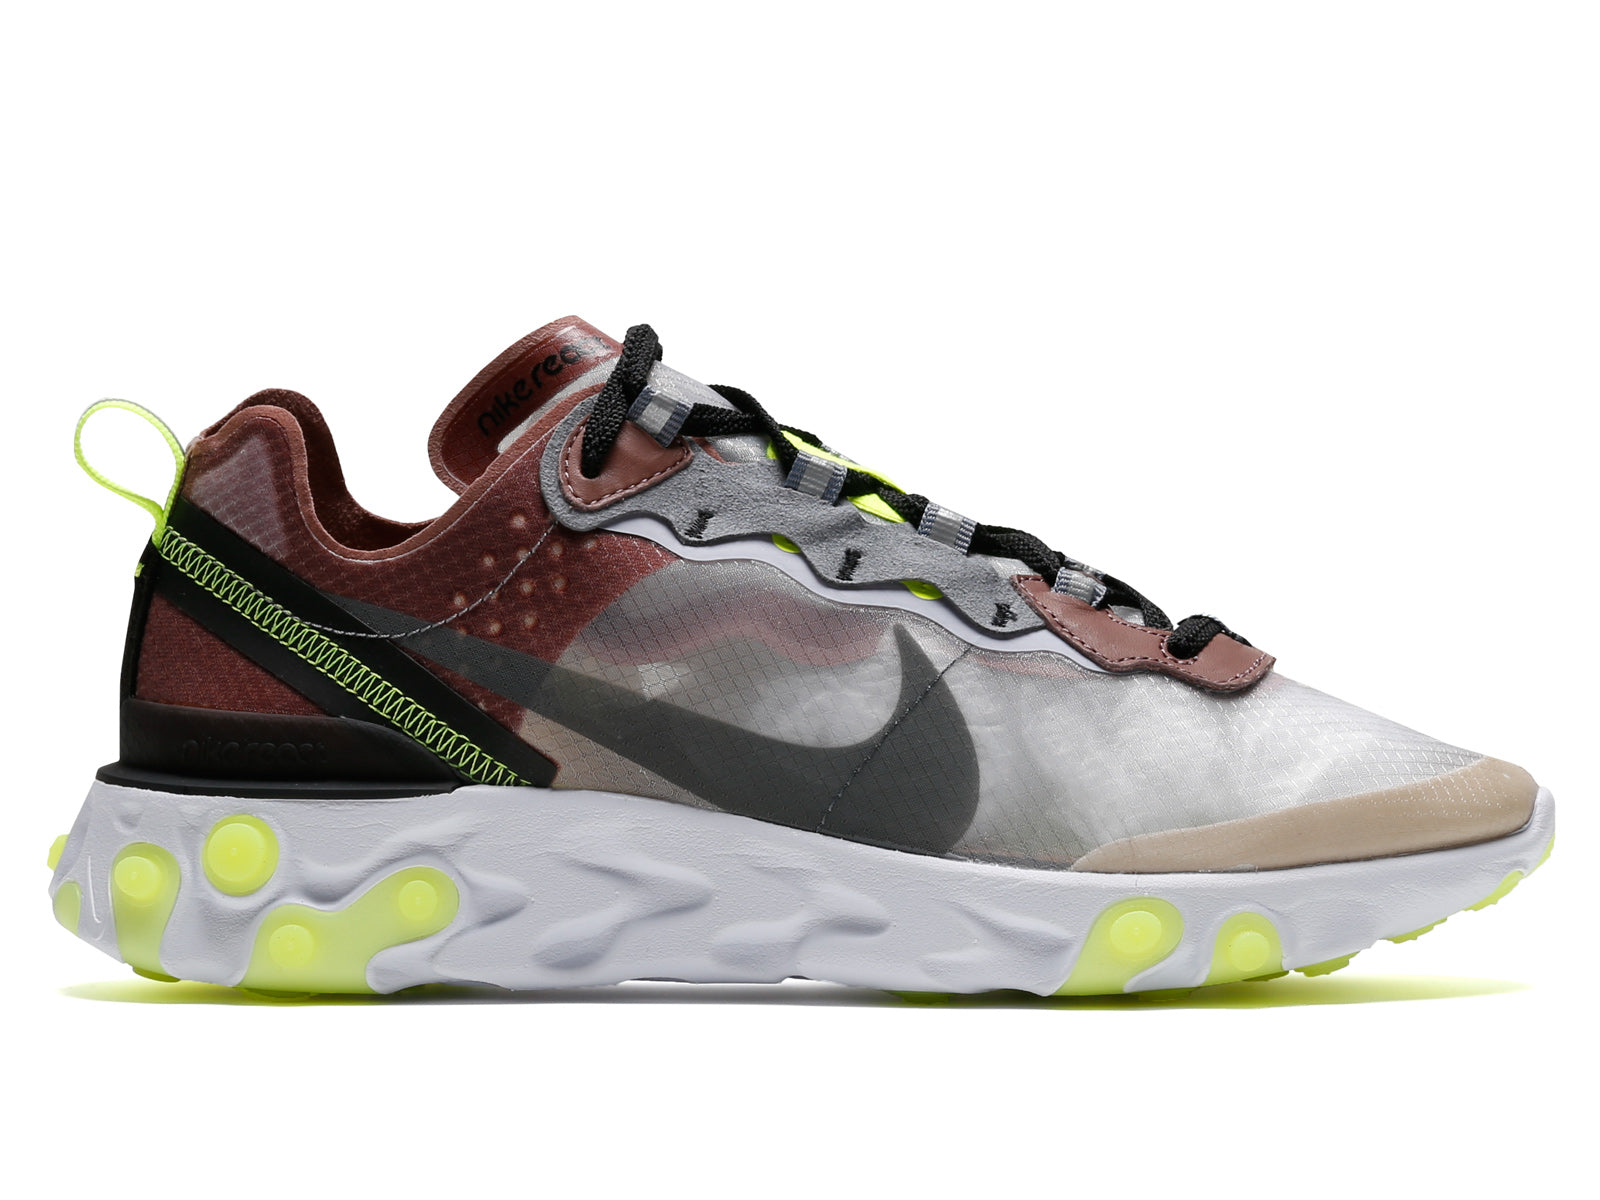 b80c47544da The React Element 87 is the official debut of the original technology